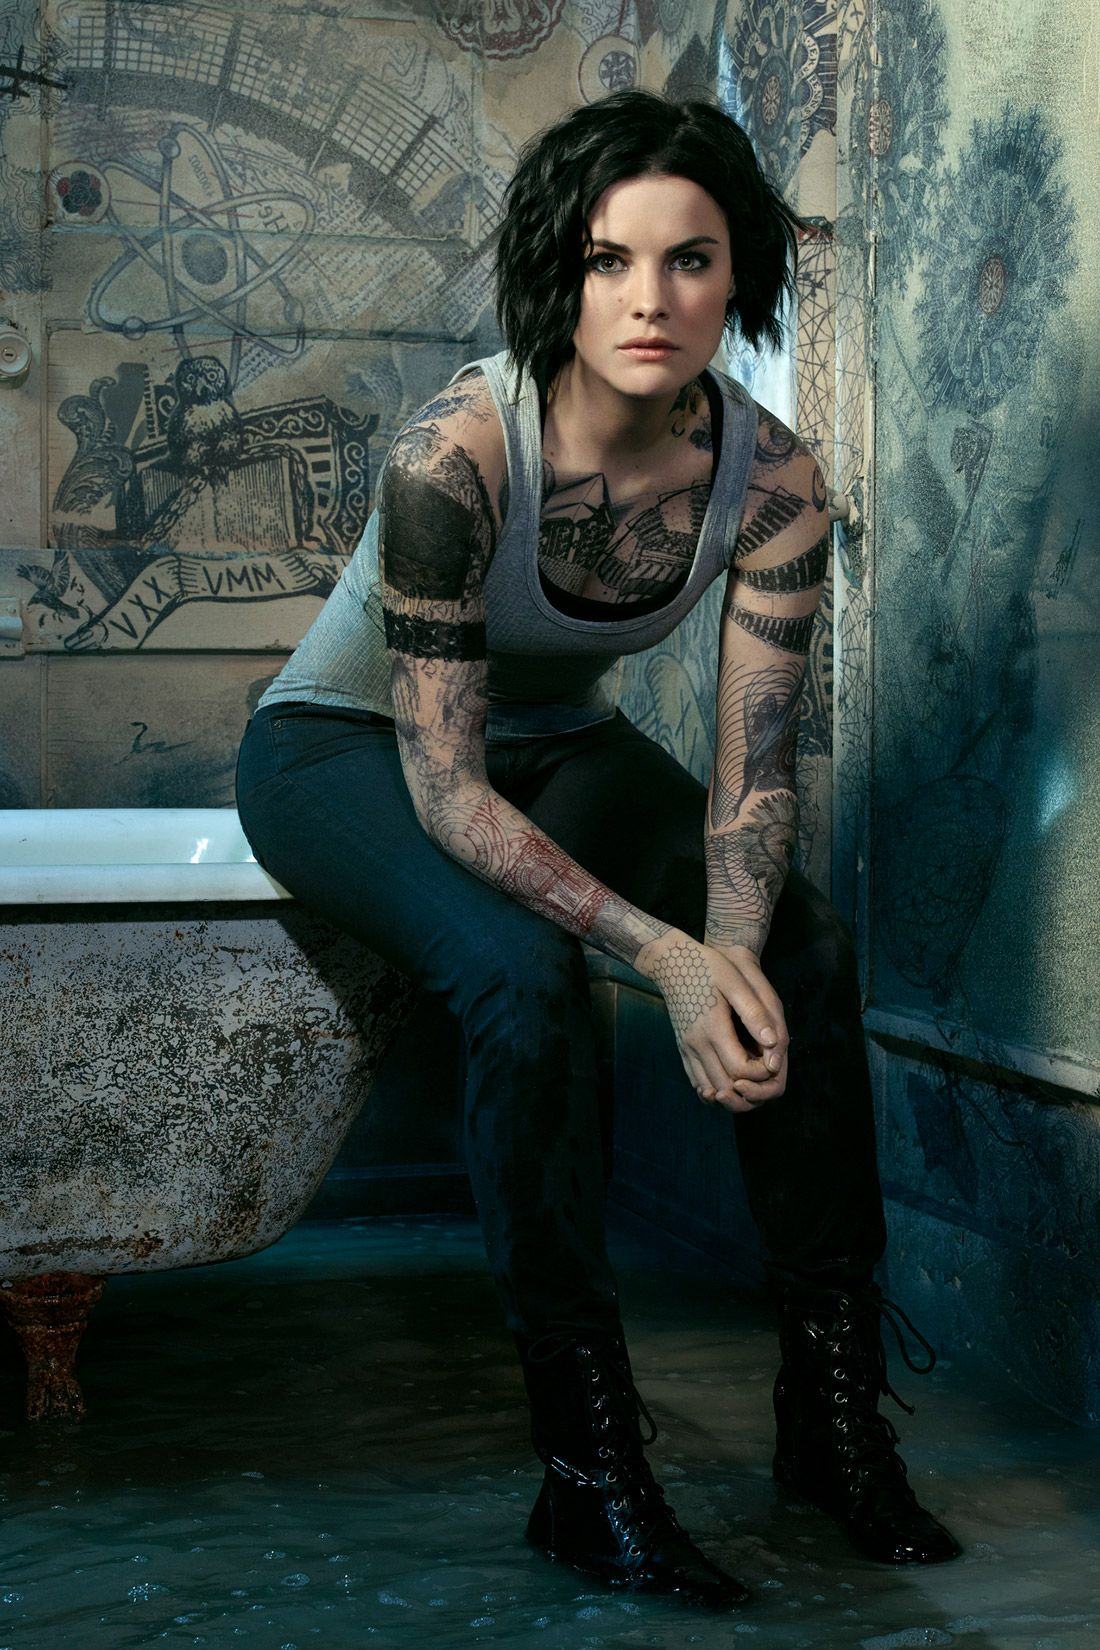 Fake Quotes Wallpaper Jaimie Alexander S New Blindspot Promos Show Off Her